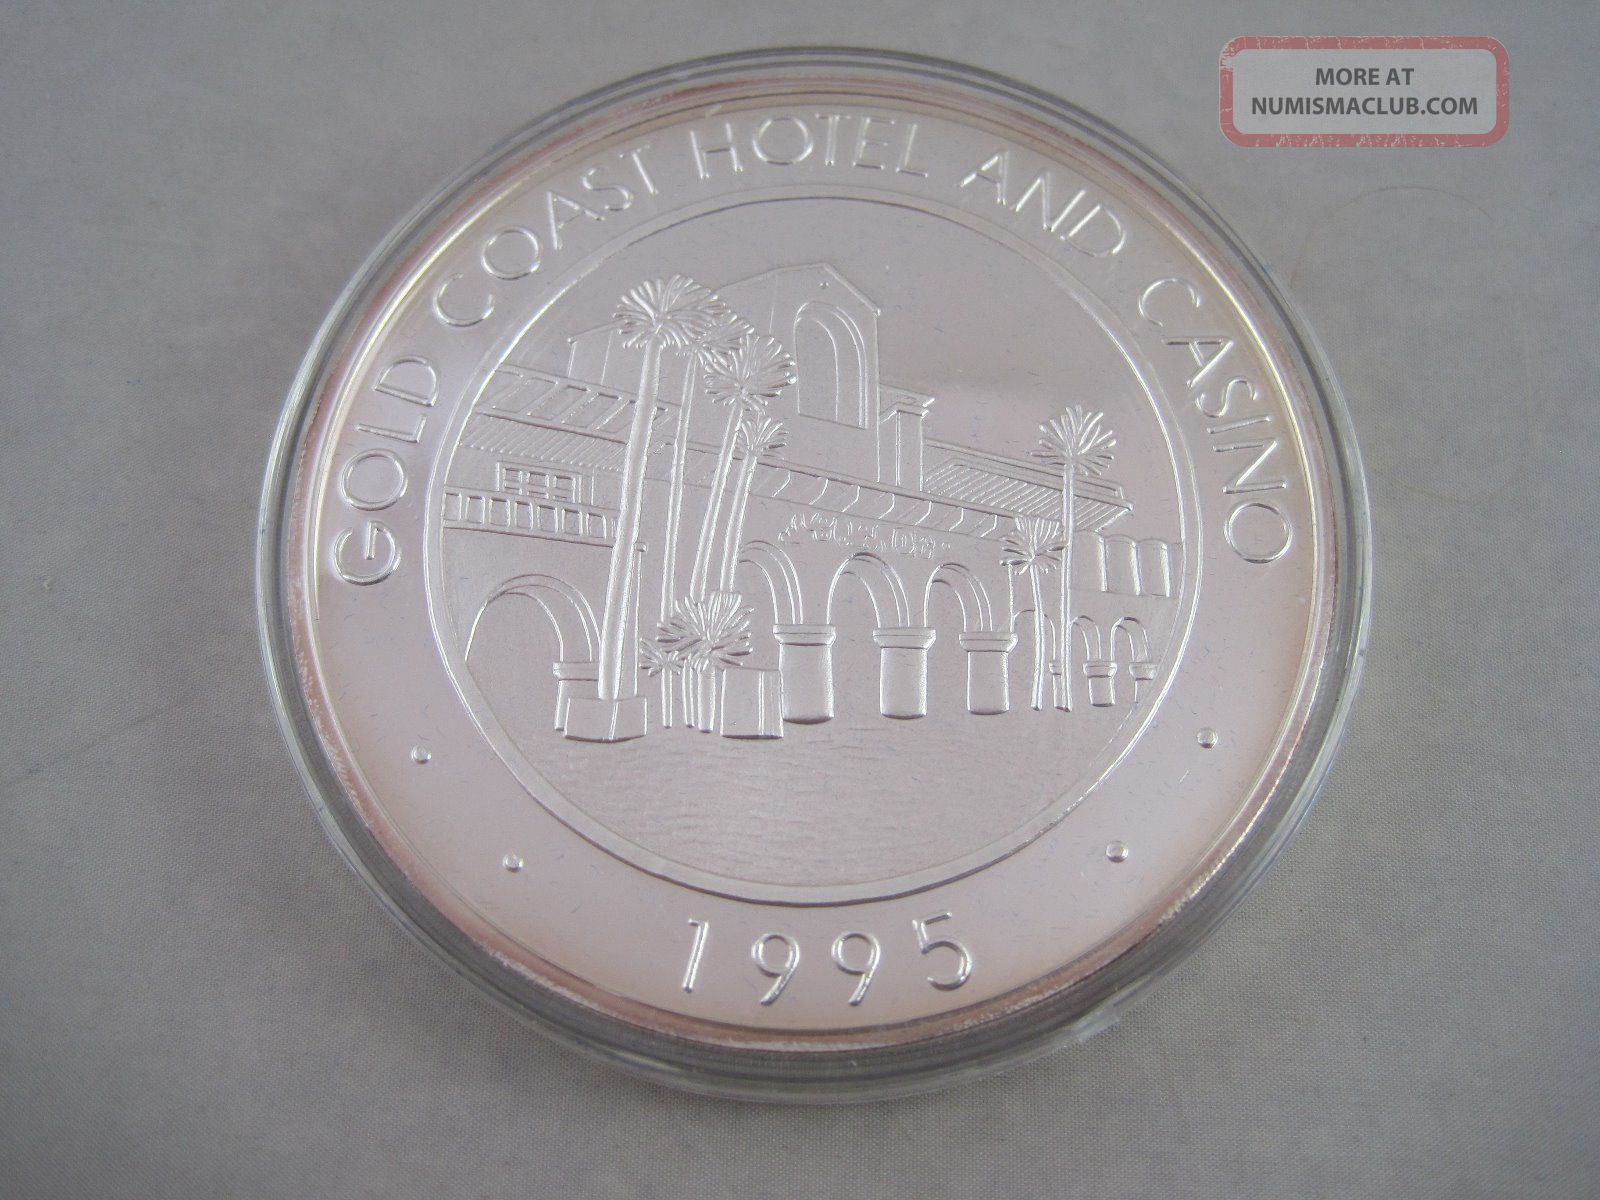 1995 Limited Edition Gold Coast Hotel Amp Casino 1 Troy Pound 999 Silver Coin